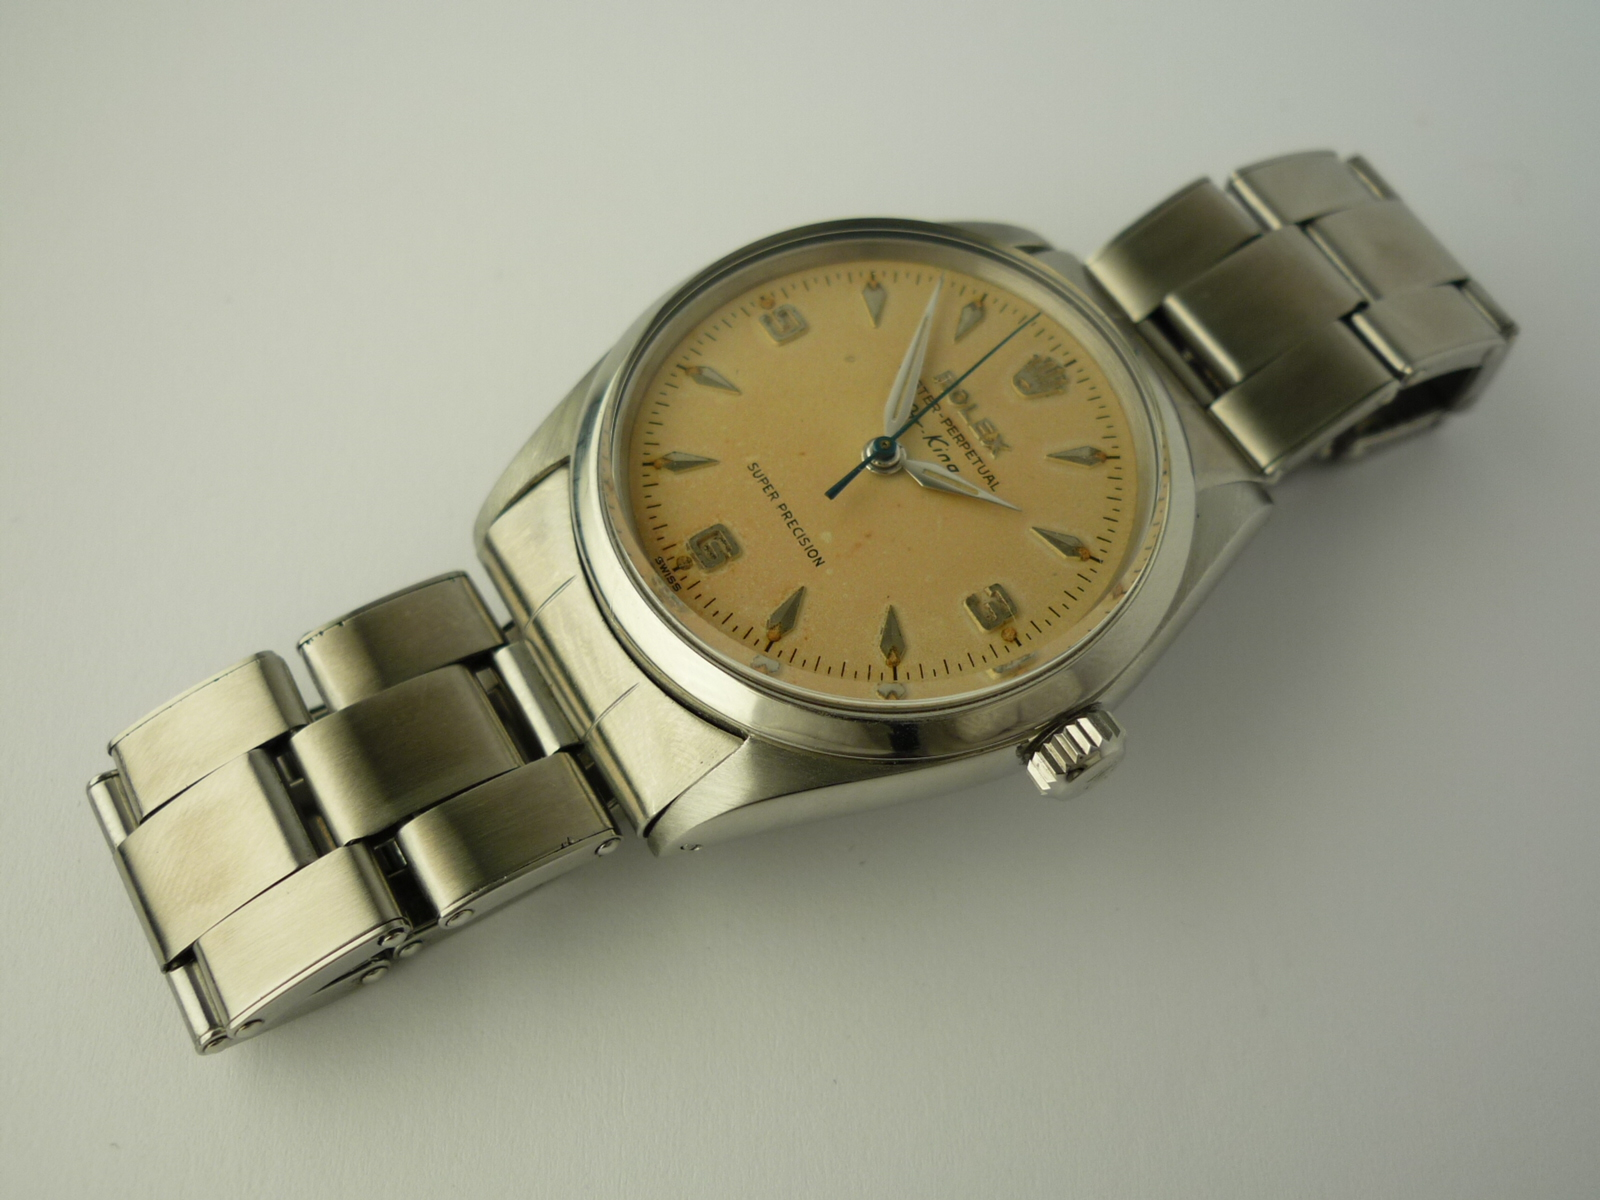 Rolex Oyster Perpetual Air King Date ref 5500 (1966)